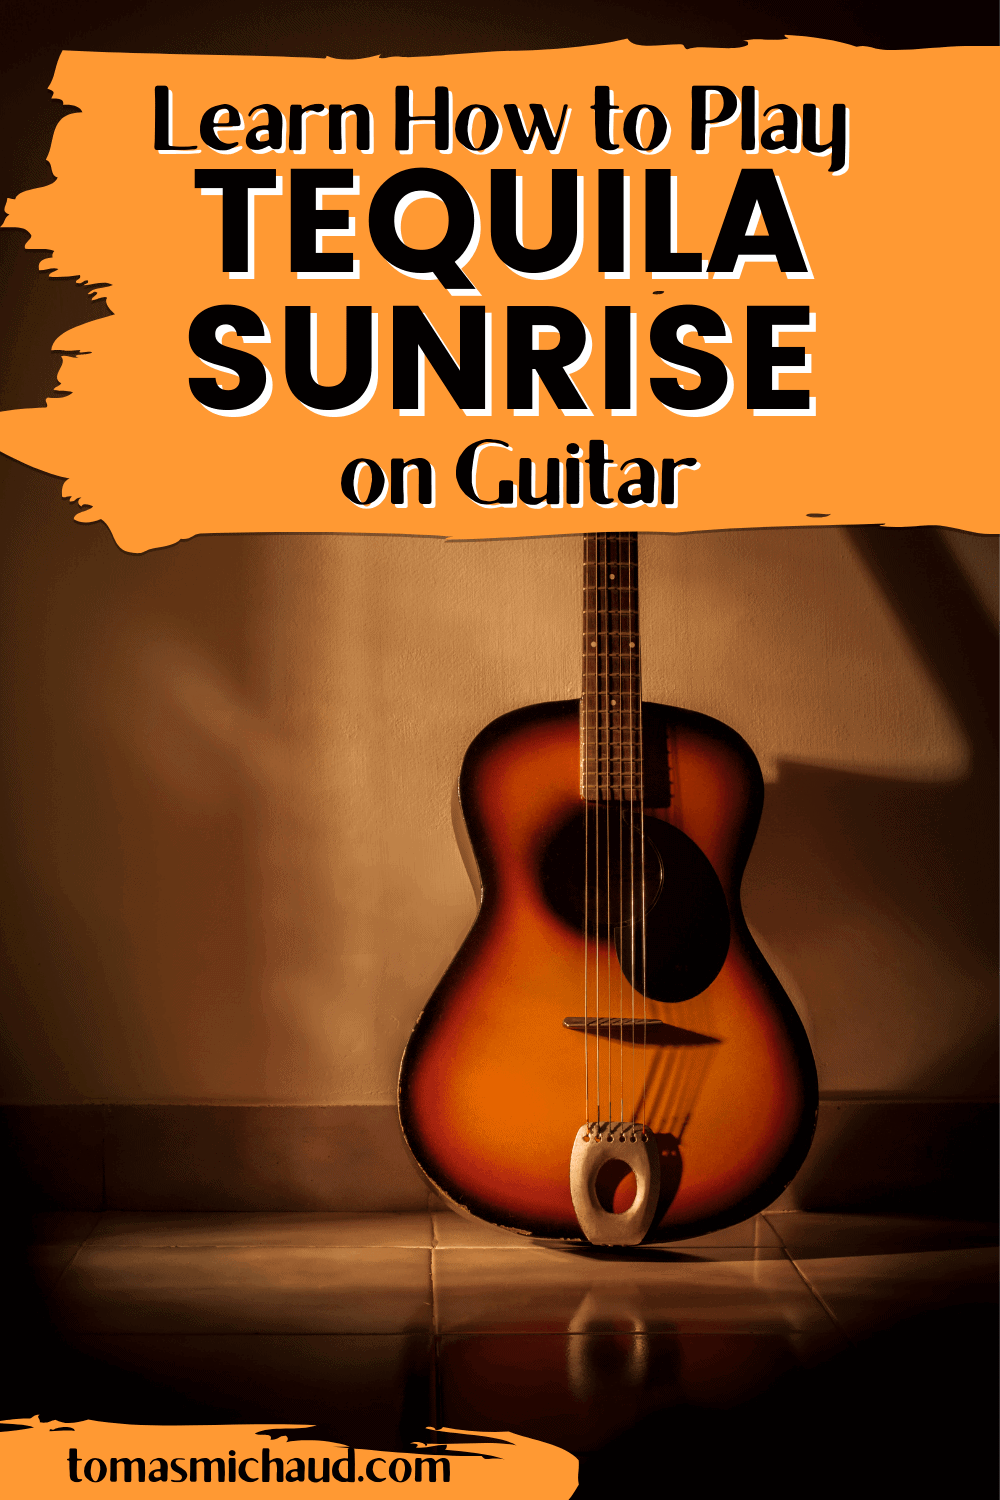 Learn how to play Tequila Sunrise on guitar